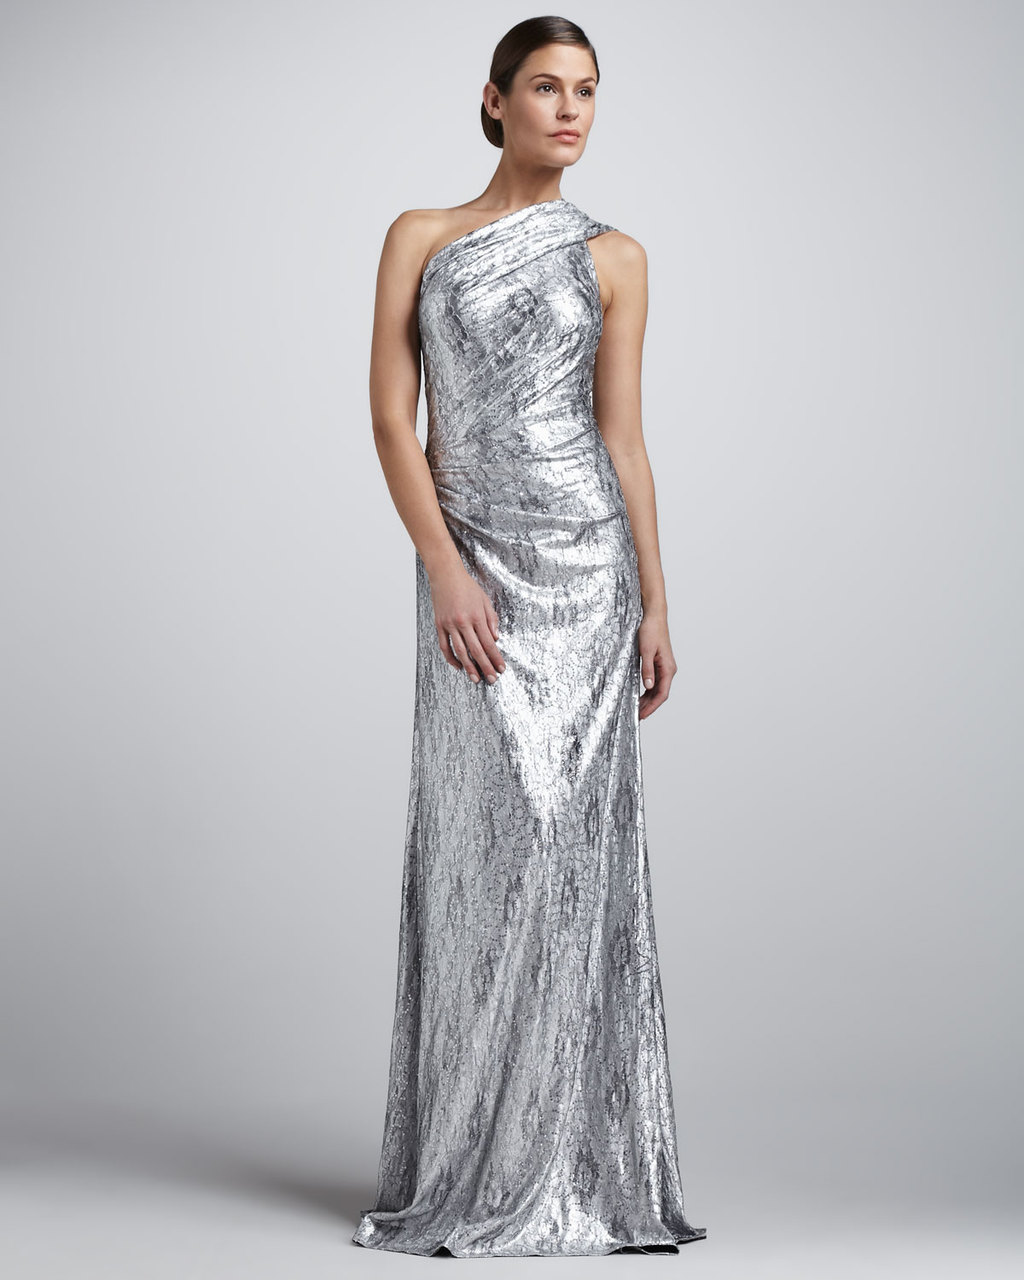 Located at the flagship Neiman Marcus store in Downtown Dallas, The Bridal Salon boasts a history of unsurpassed service as well as designs by the best names in the bridal industry. Our large collection is comprised of gowns by Monique Lhuillier, Amsale, Vera Wang, Christos, Carolina Herrera /5(23).